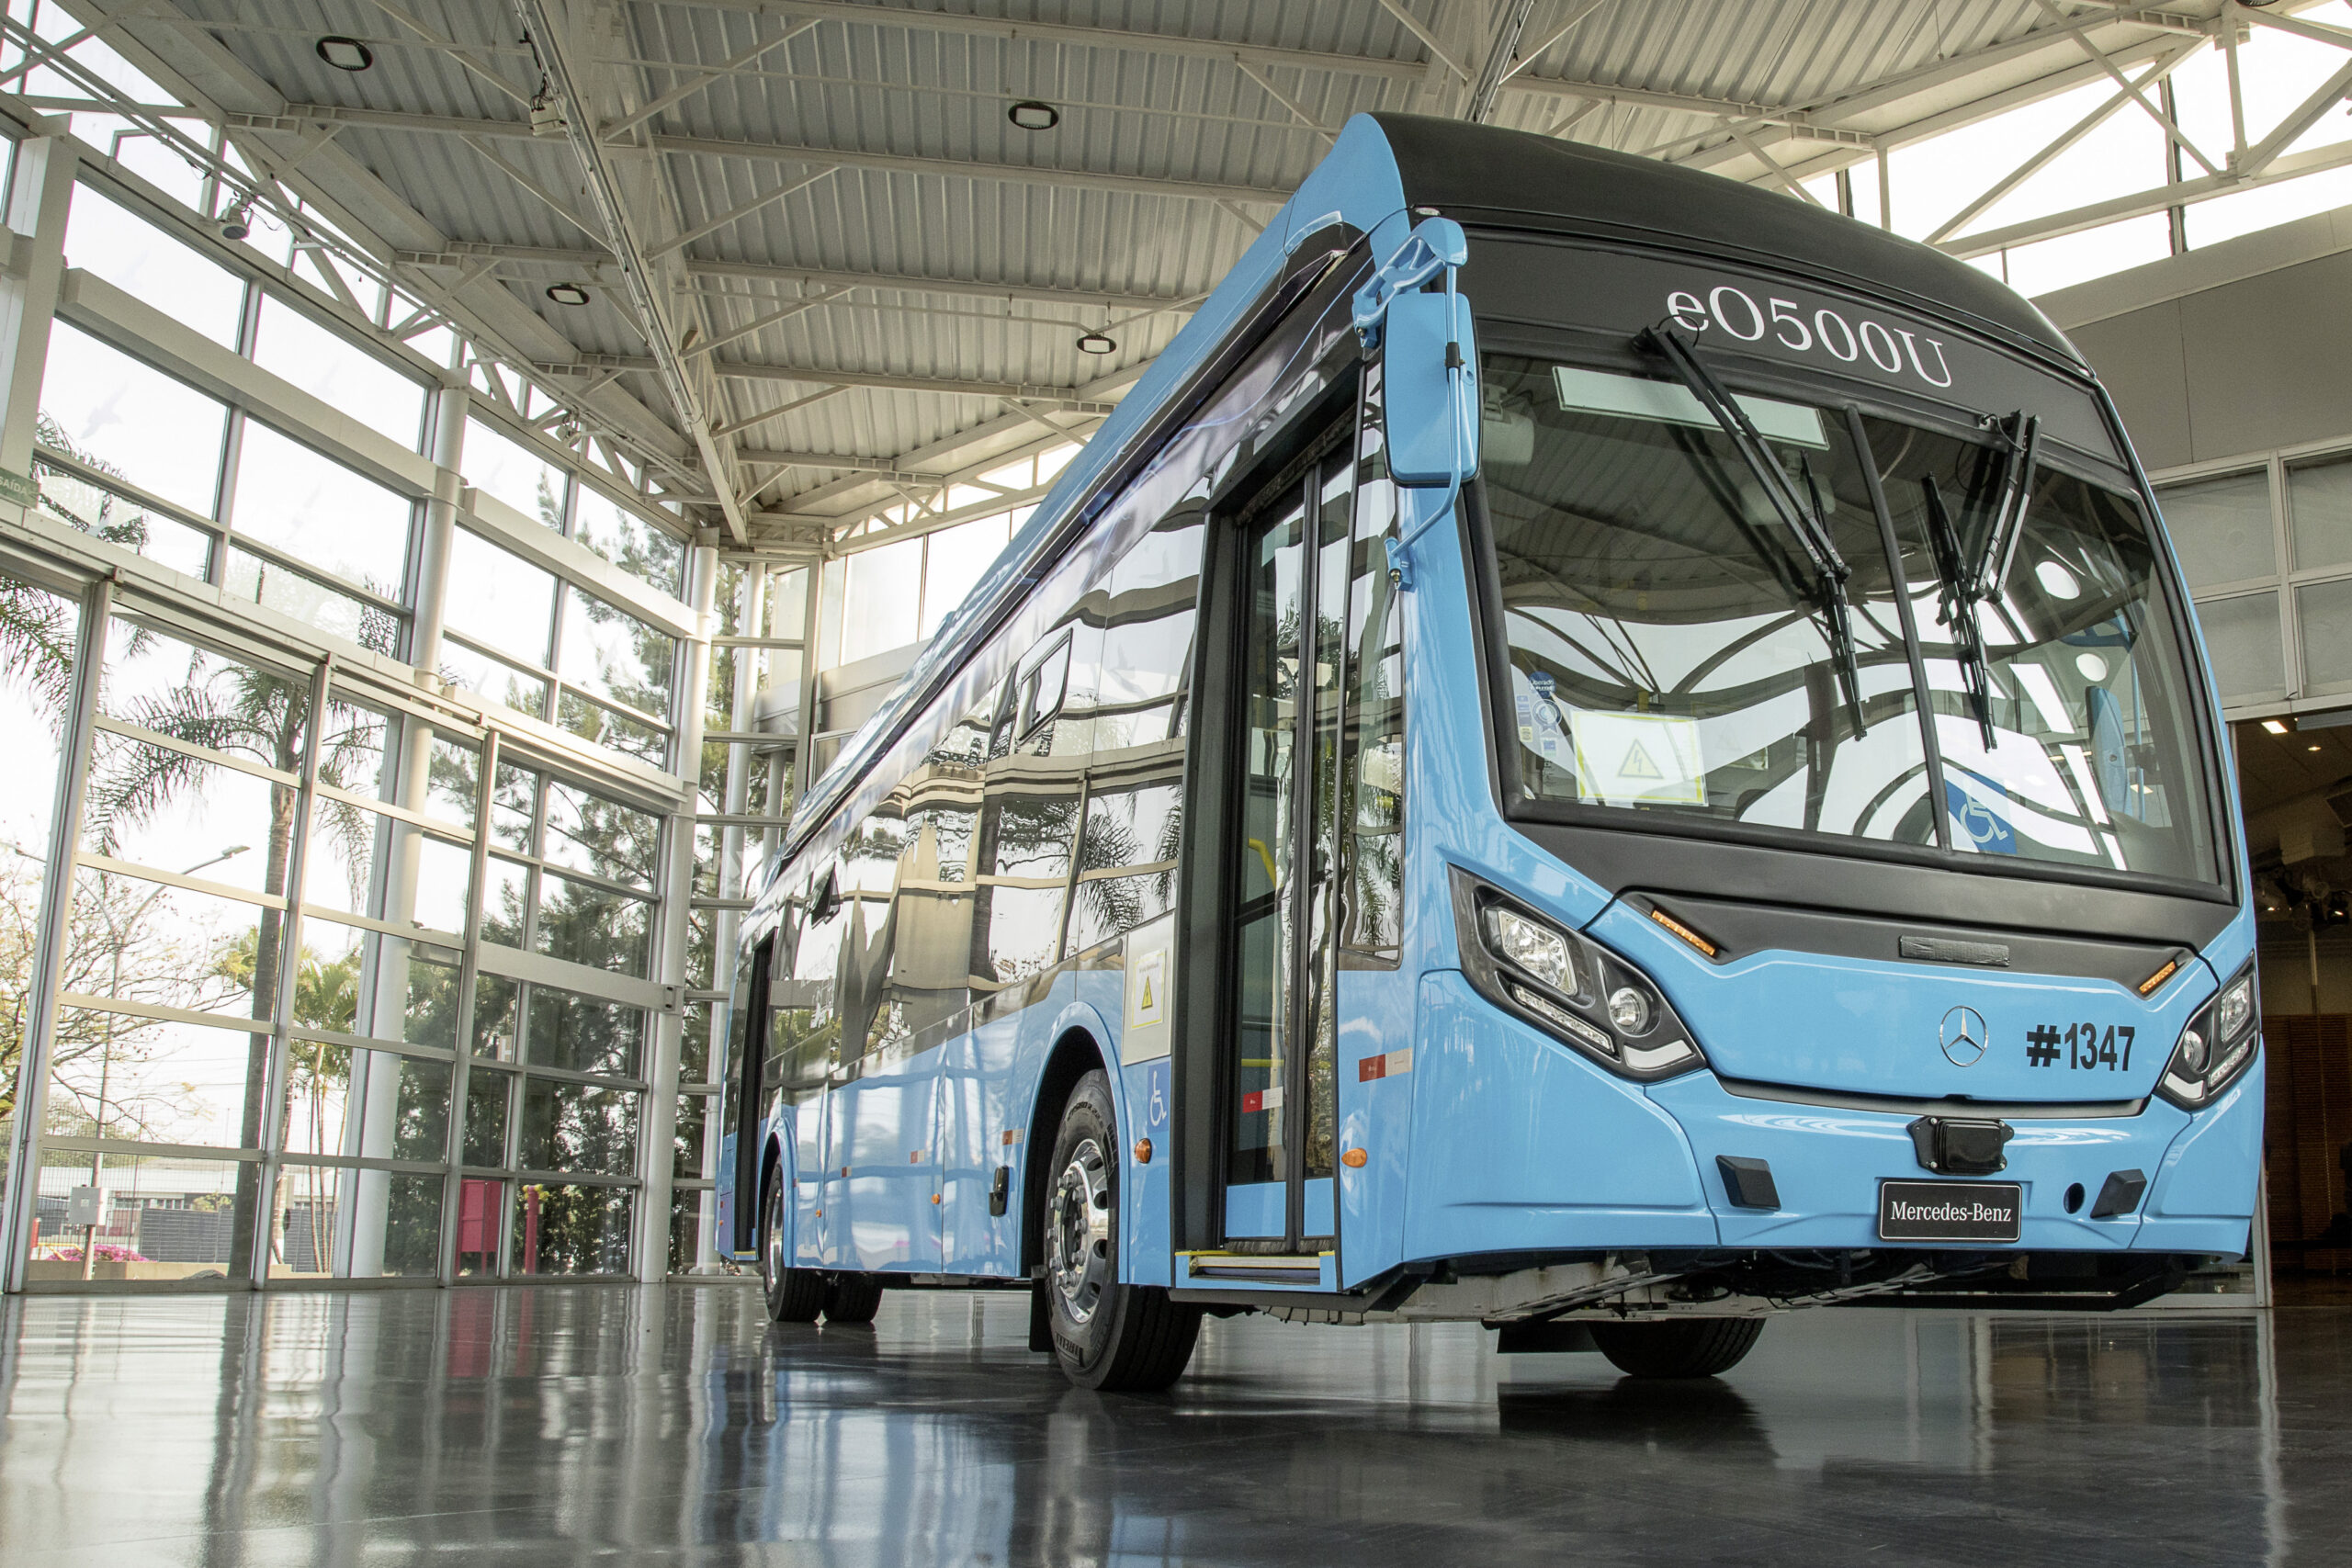 Mercedes-Benz brasil bus chassis